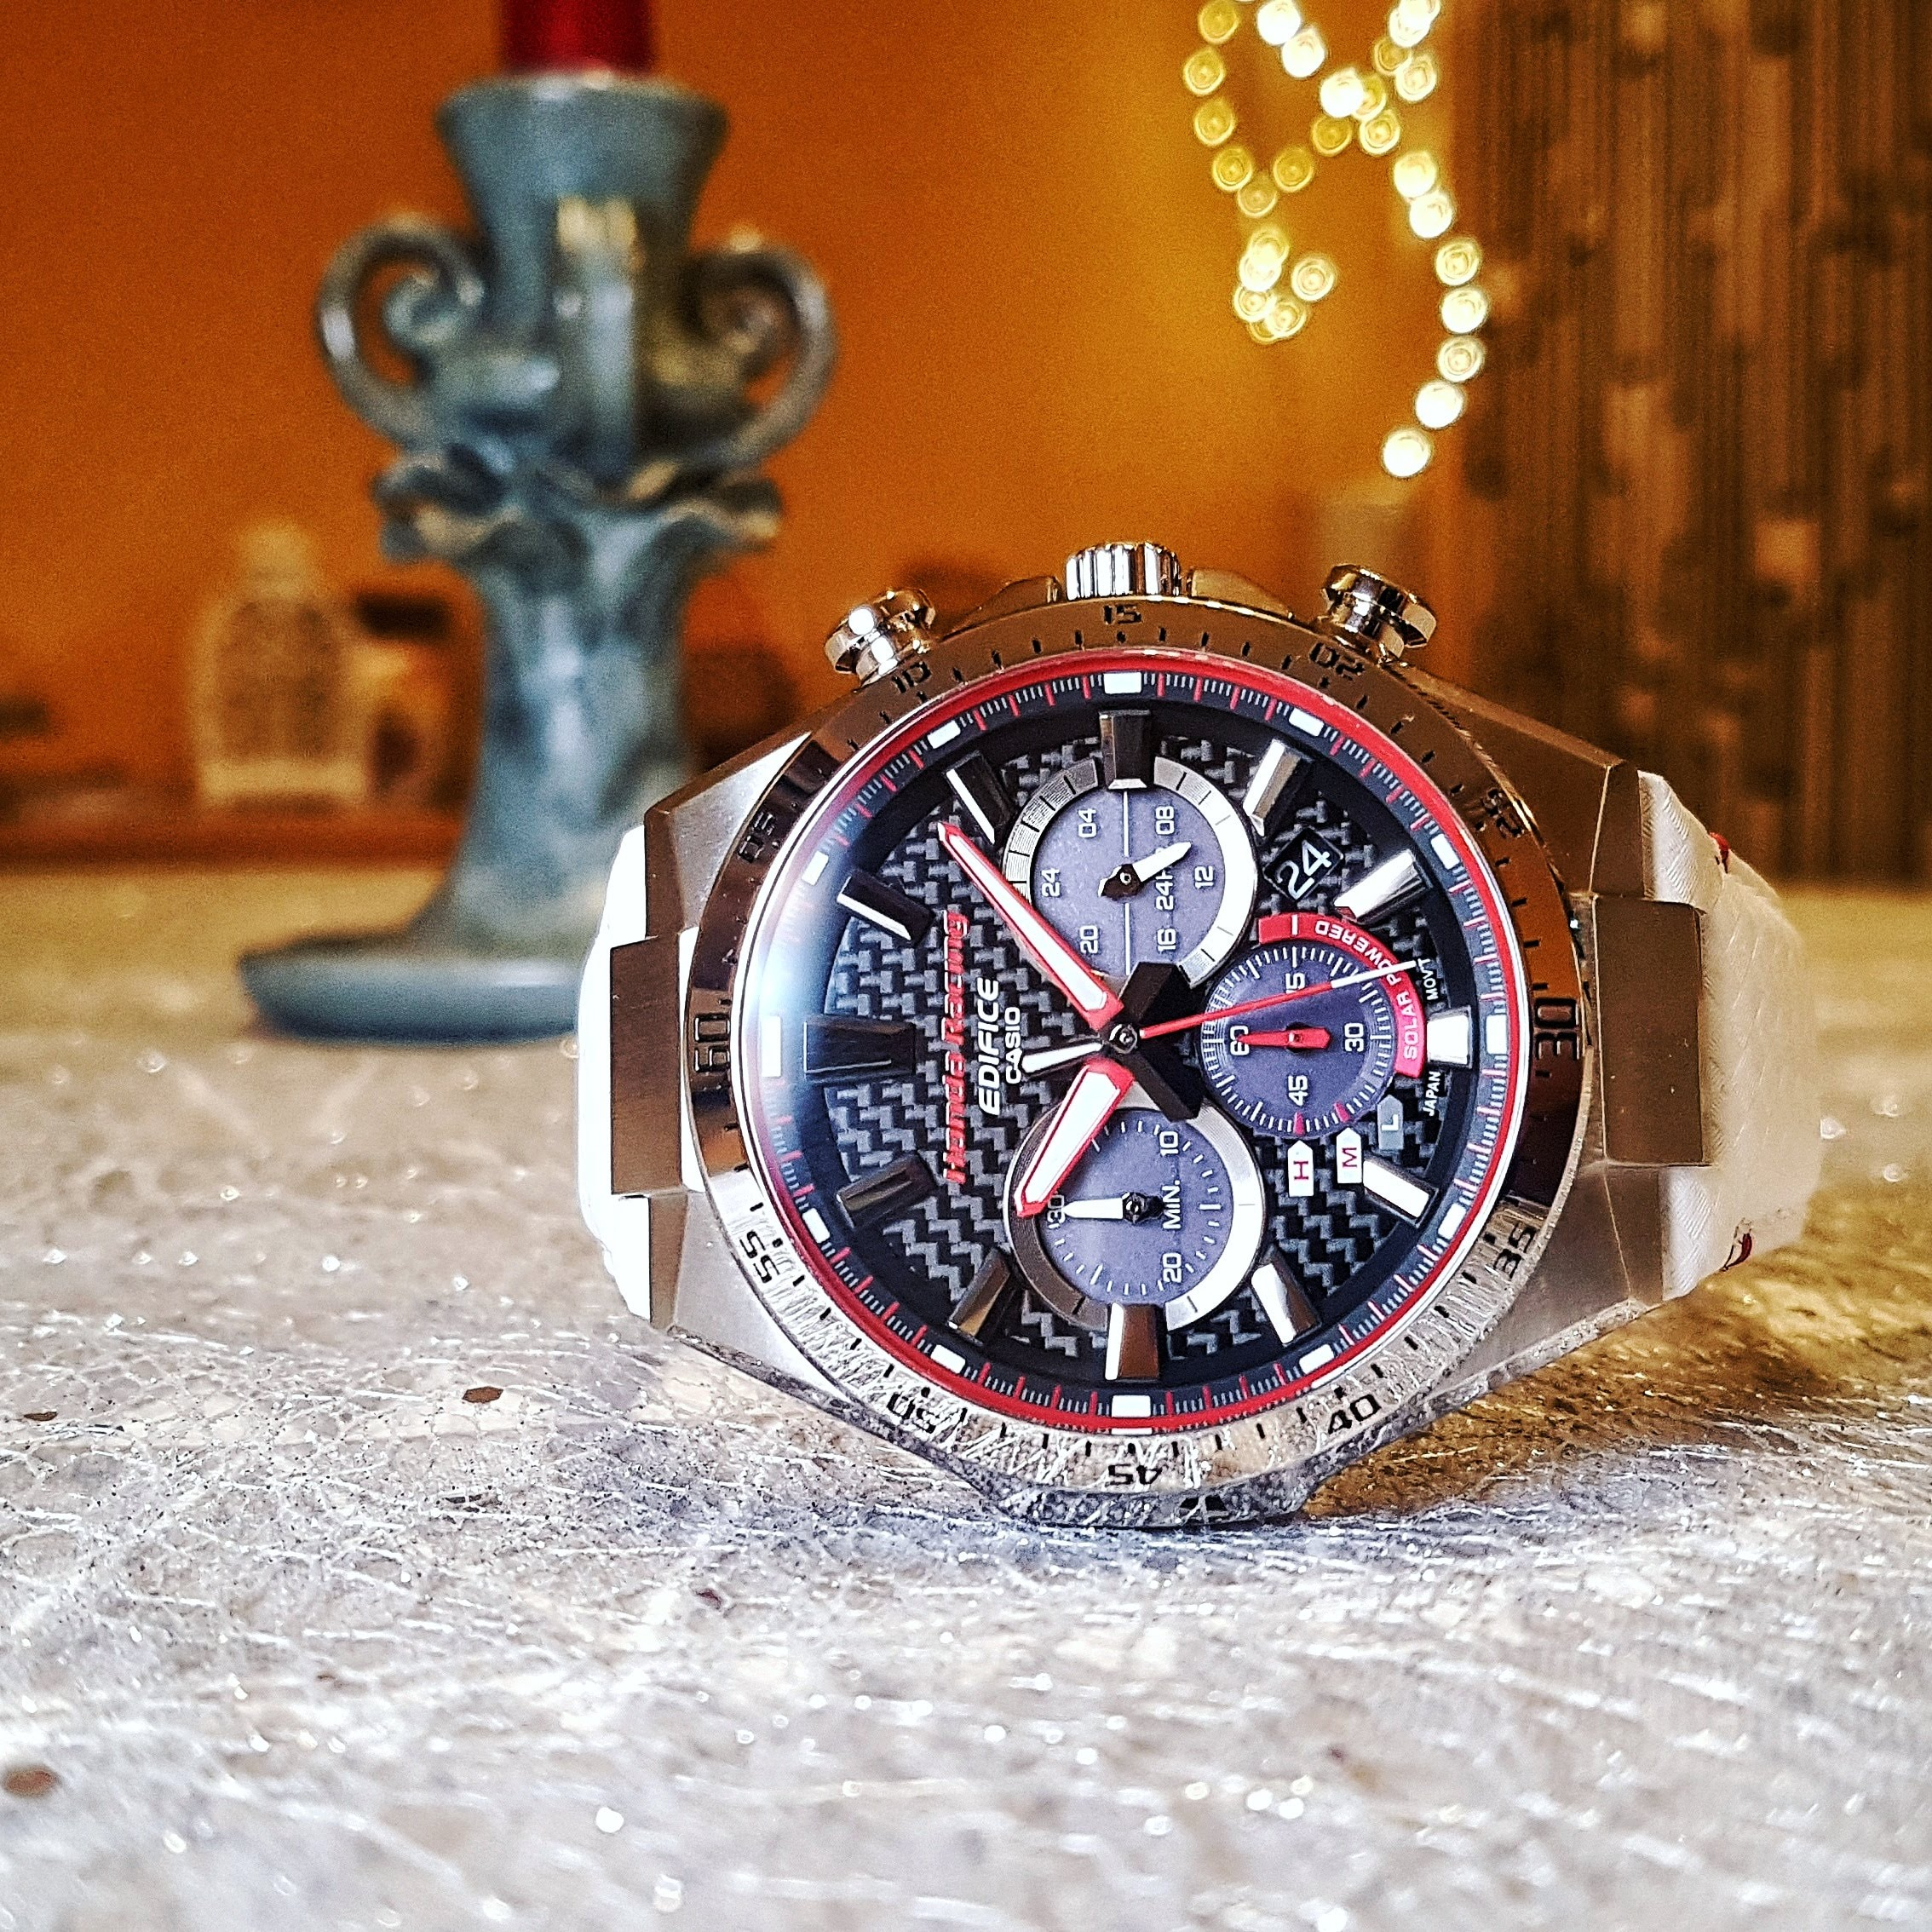 Casio Edifice Honda Racing limited edition - a legszebb versenyző ... 2e48a96835